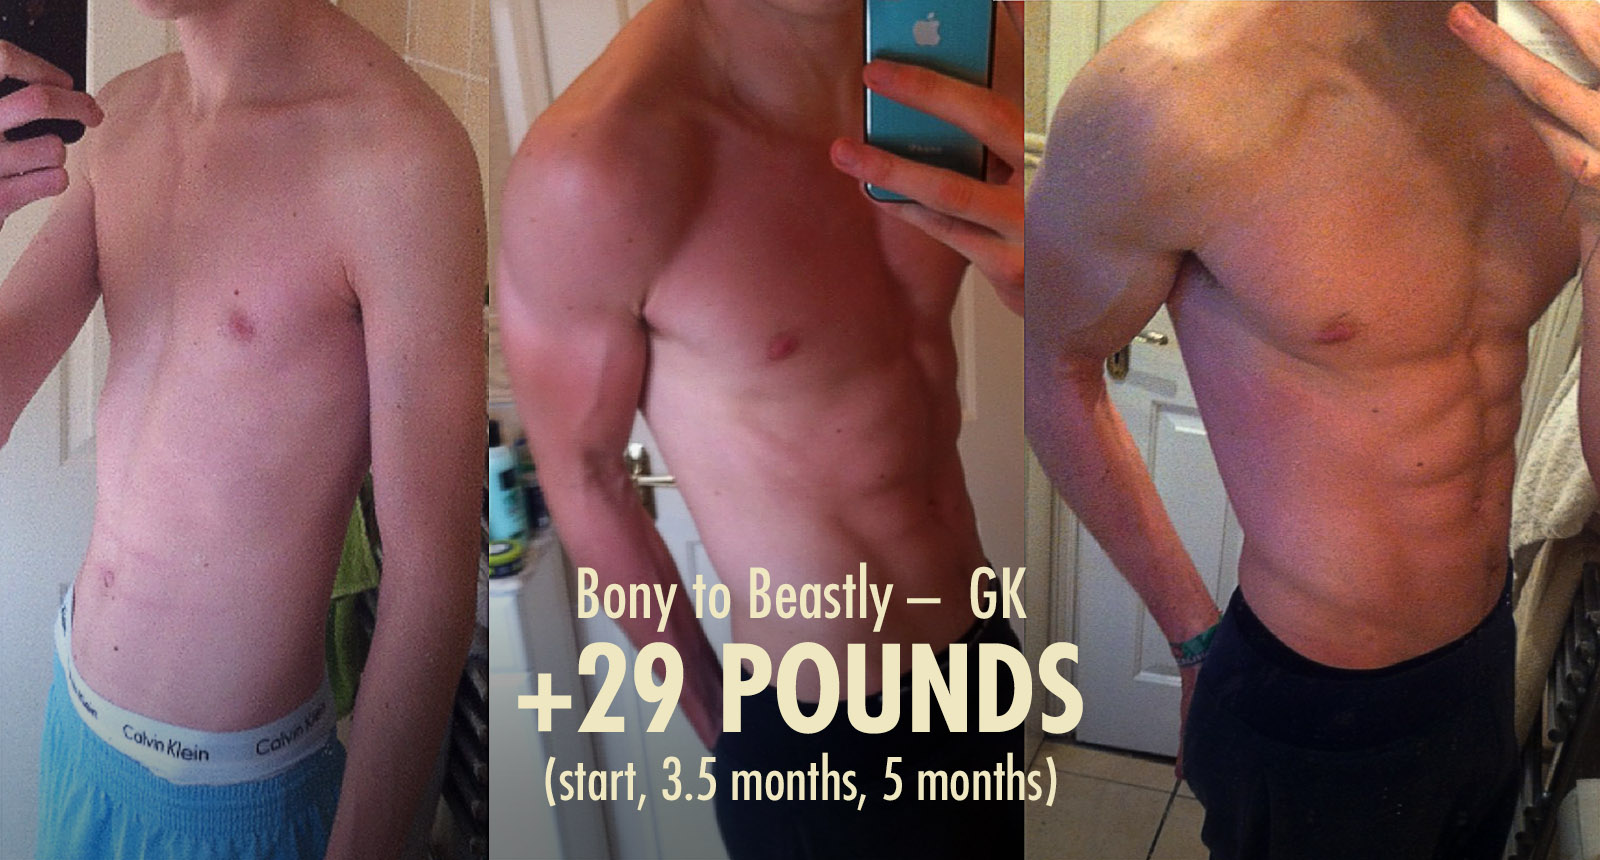 Before and after progress photos showing a skinny ectomorph gaining muscle and bulking up.